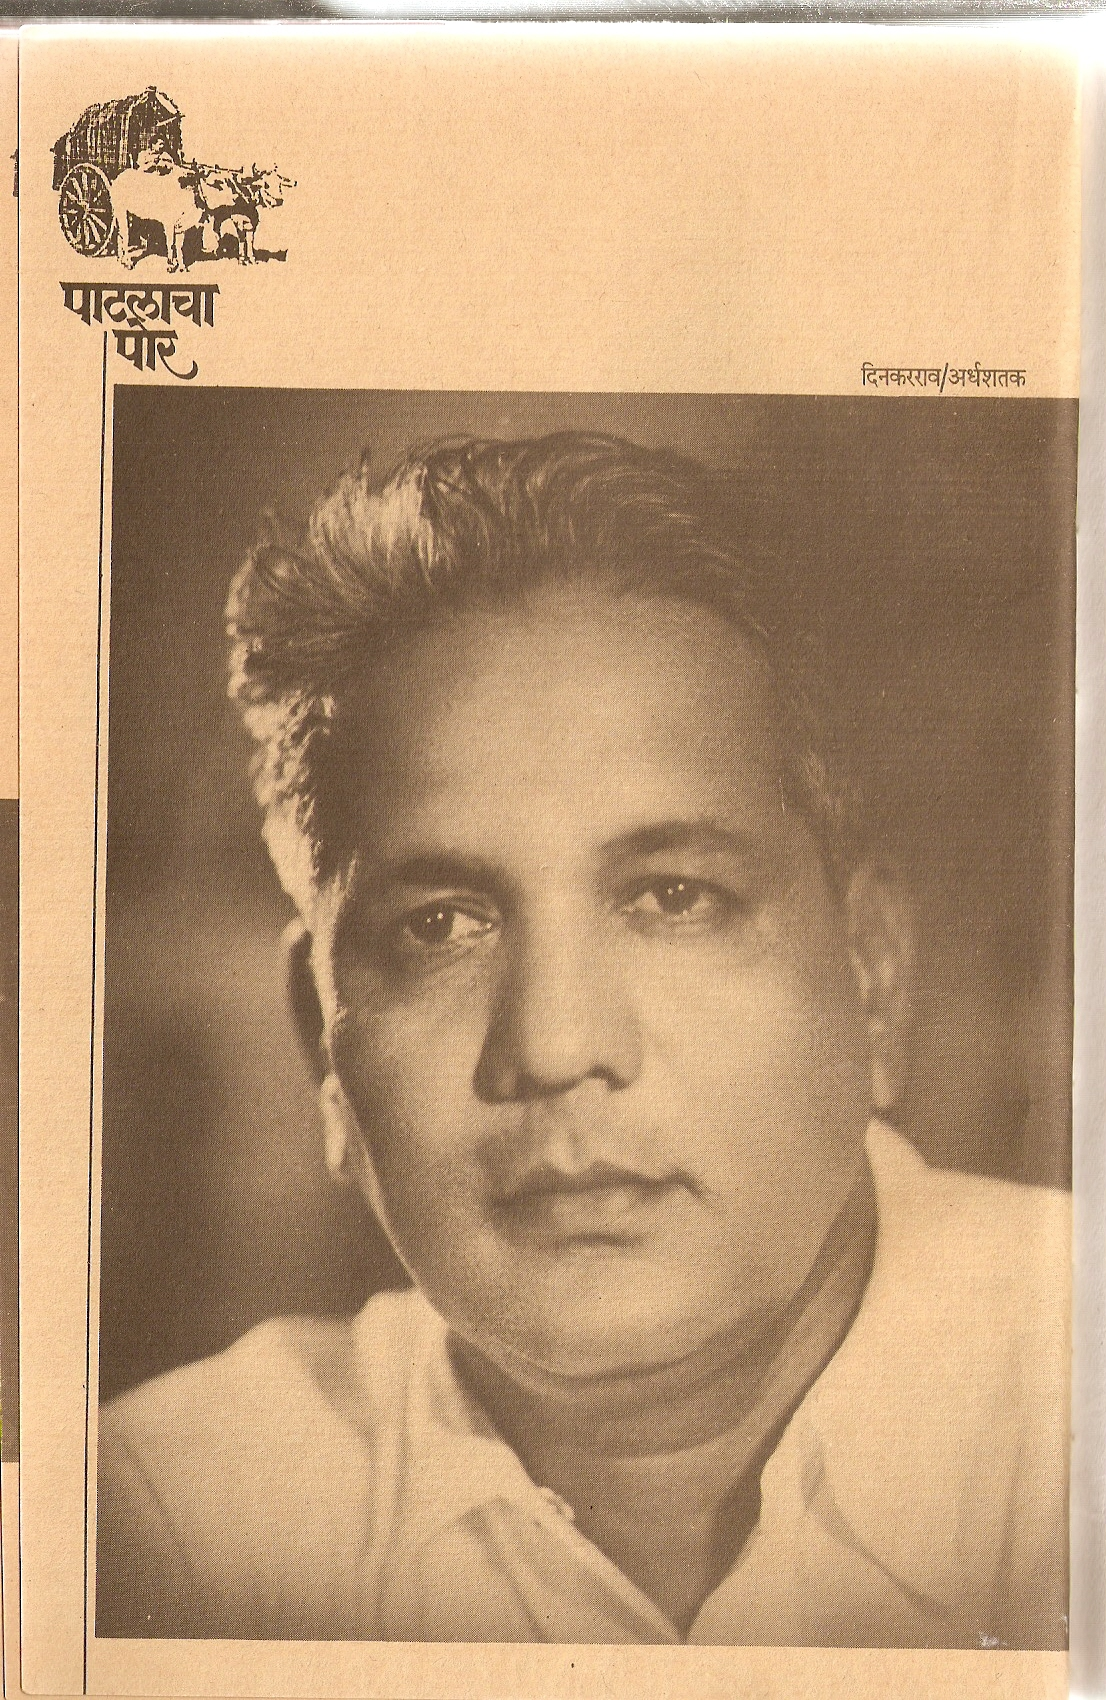 Dinkar D. Patil